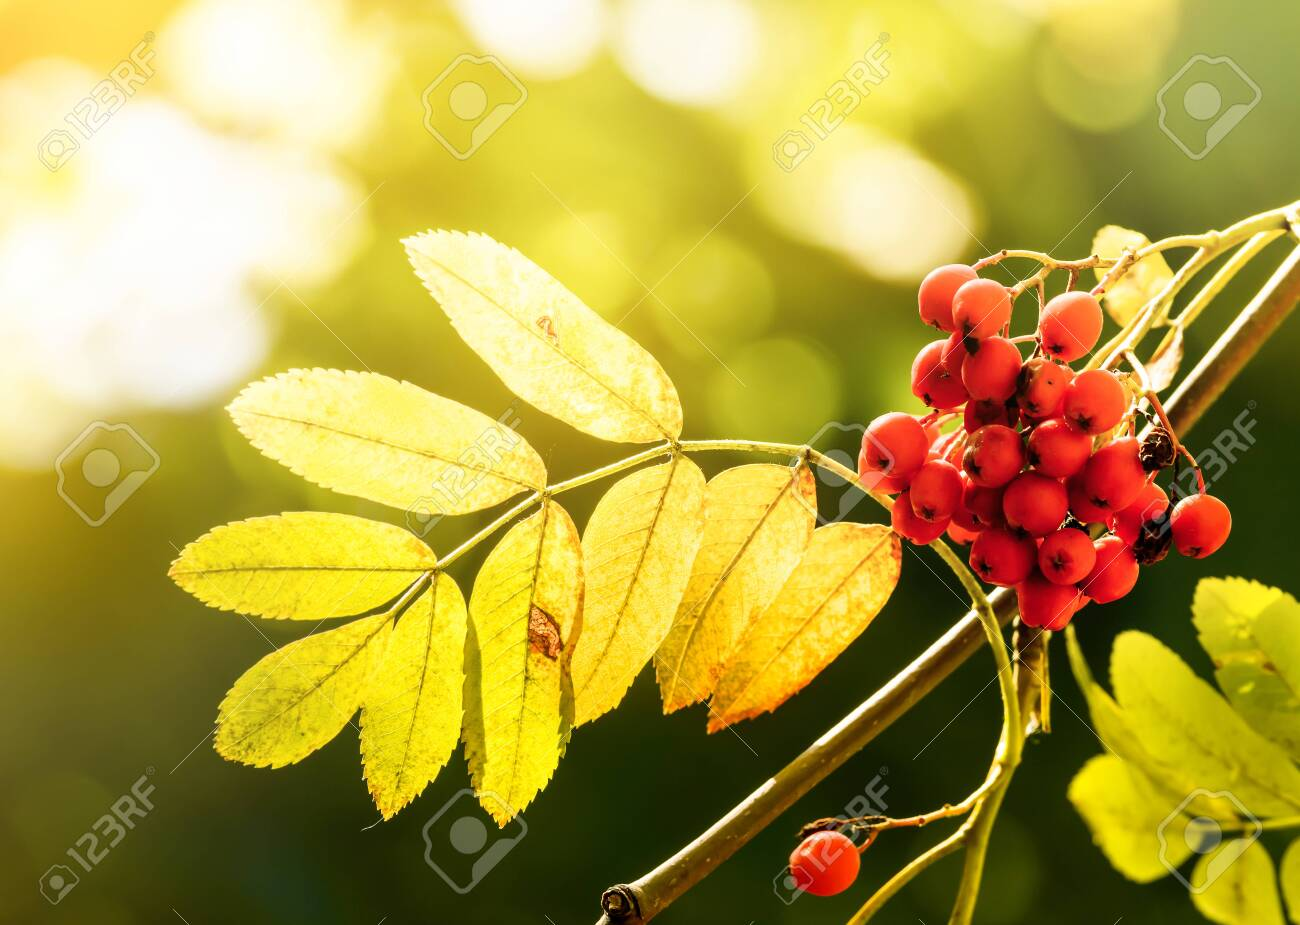 Autumn Rowan Tree With Red Berries And Yellow Leaves Stock Photo